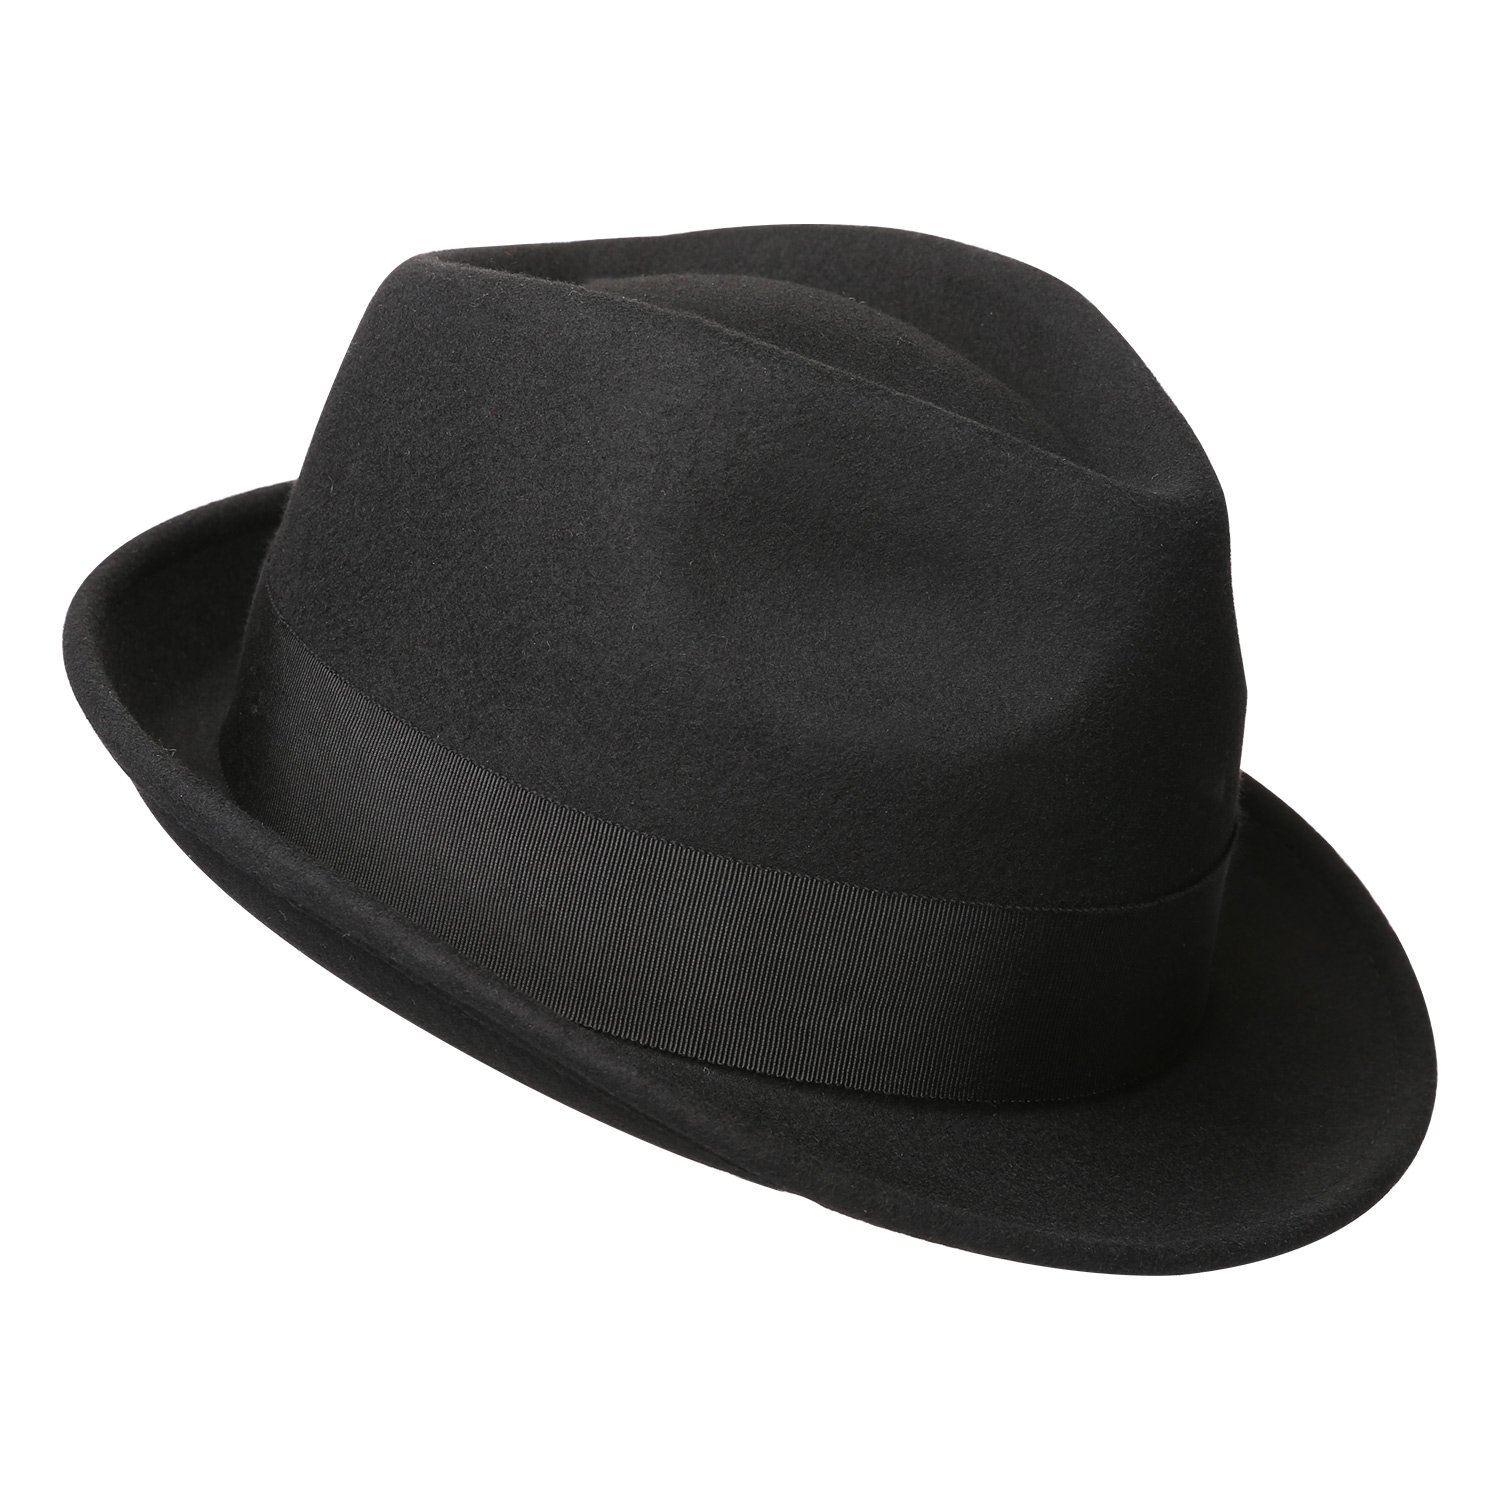 170e794bcae Sedancasesa Mens Felt Fedora Hat Unisex Classic Manhattan Indiana Jones Hats  at Amazon Men s Clothing store